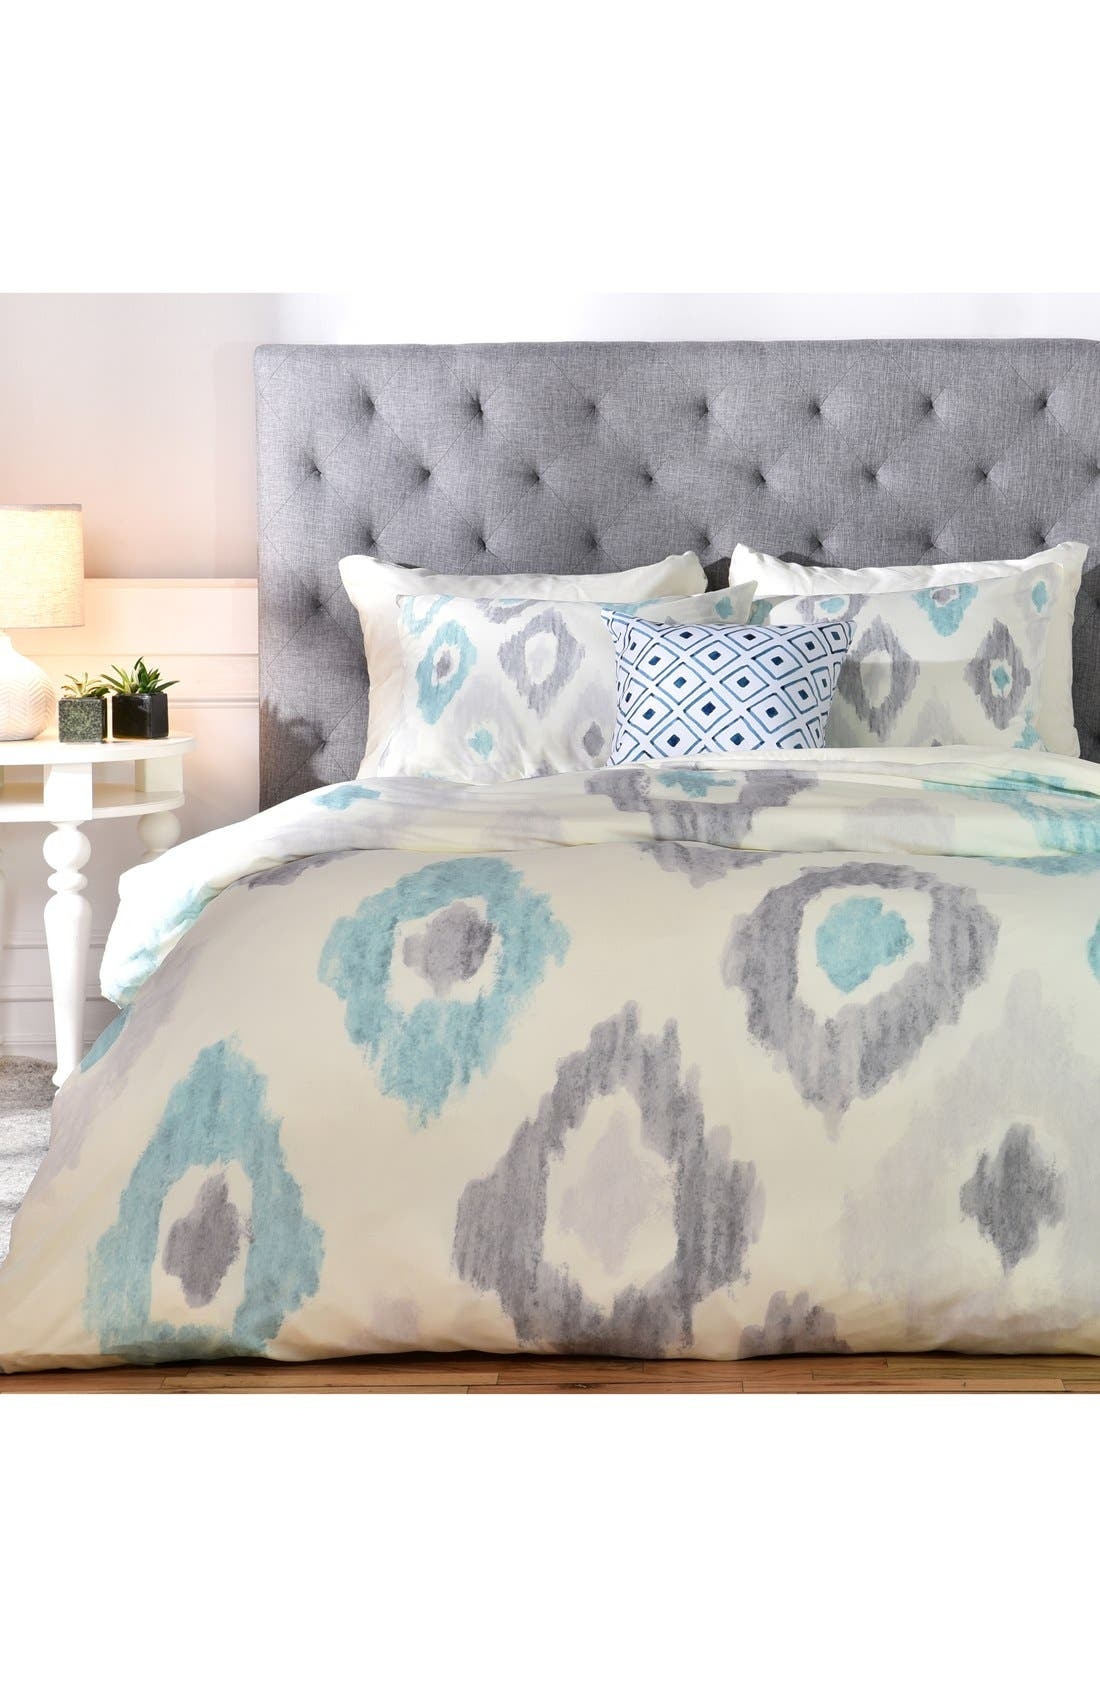 Alternate Image 1 Selected - Deny Designs Social Proper Quiet Ikat Duvet Cover & Sham Set